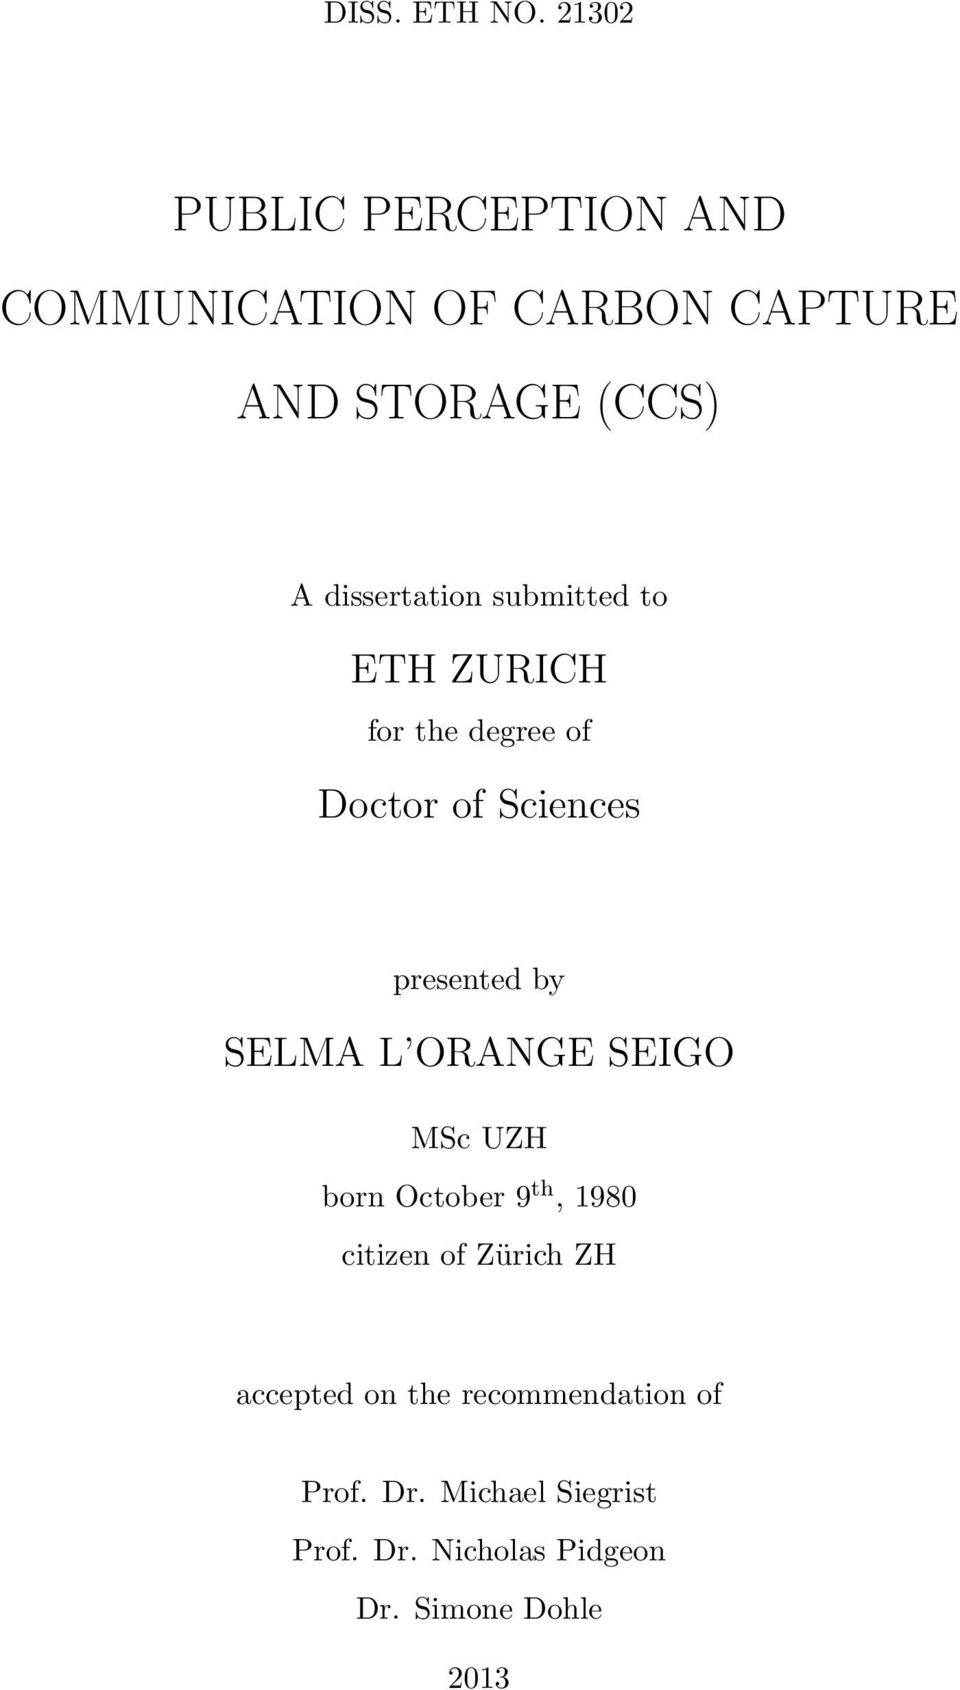 dissertation submitted to ETH ZURICH for the degree of Doctor of Sciences presented by